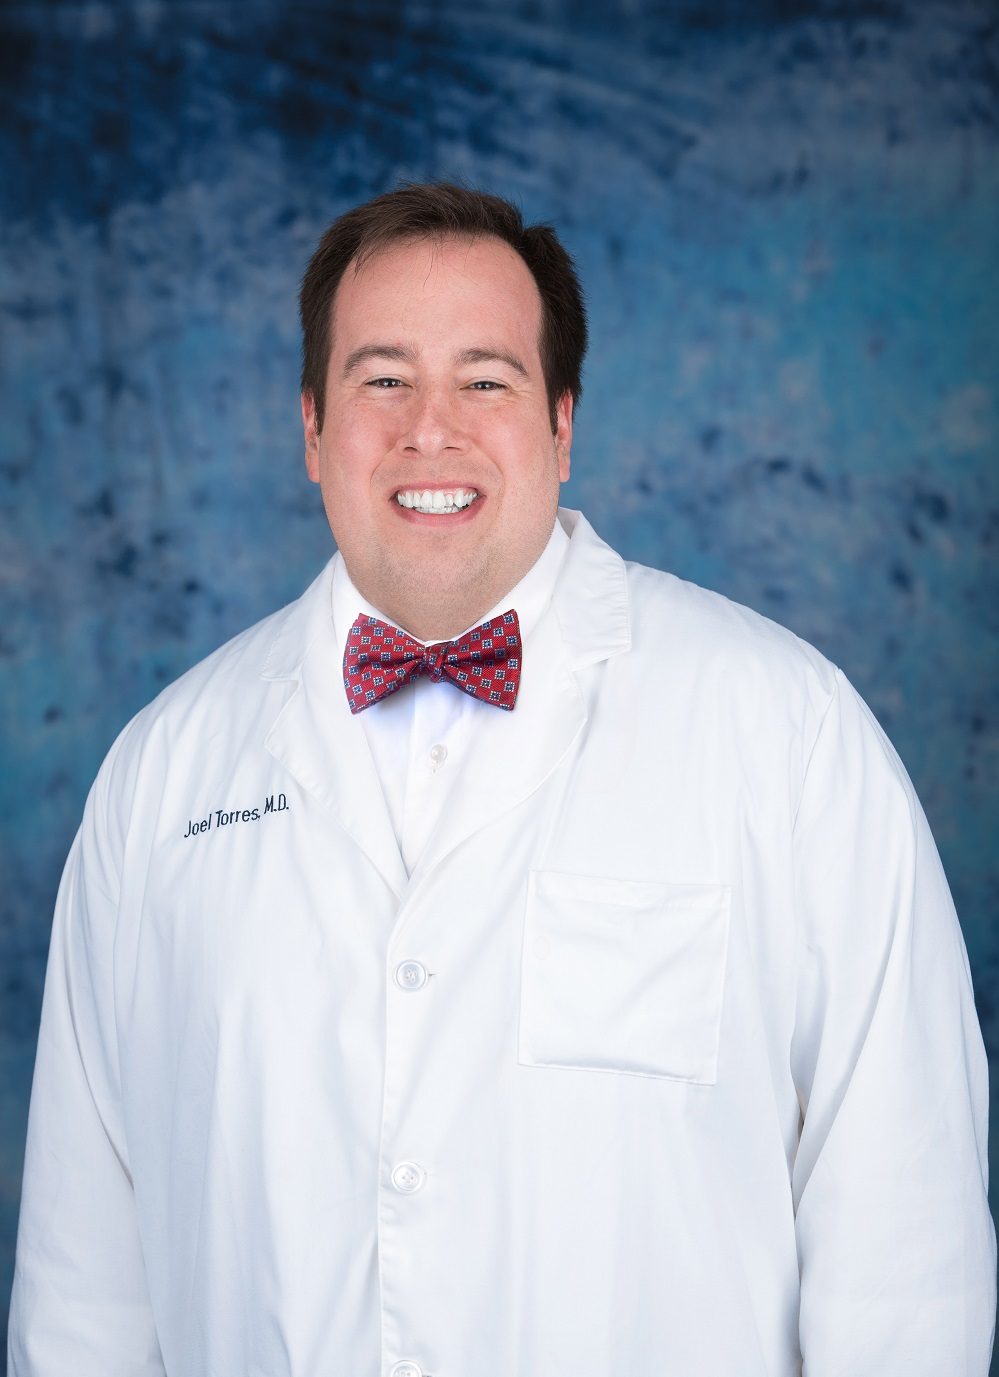 Joel Torres, MD of Knoxville Neurology Specialists